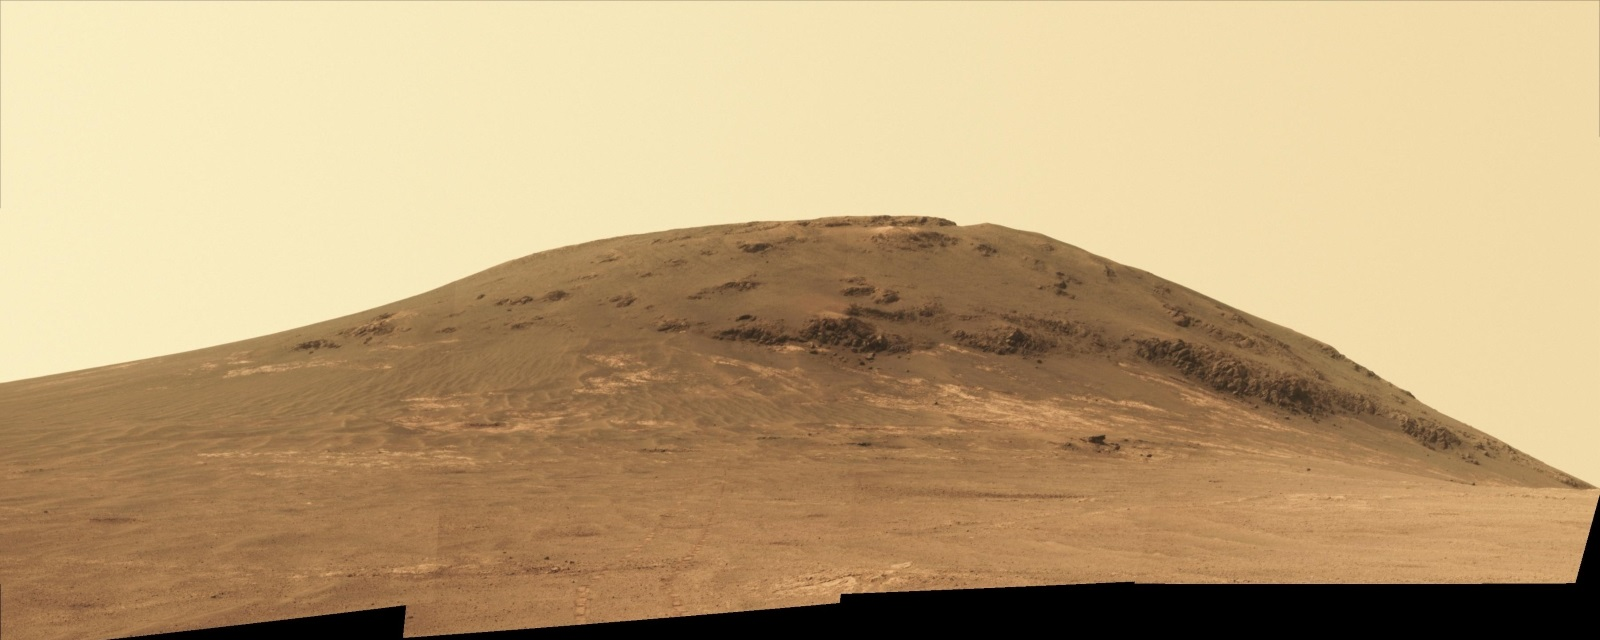 Opportunity: Putting Martian 'Tribulation' Behind